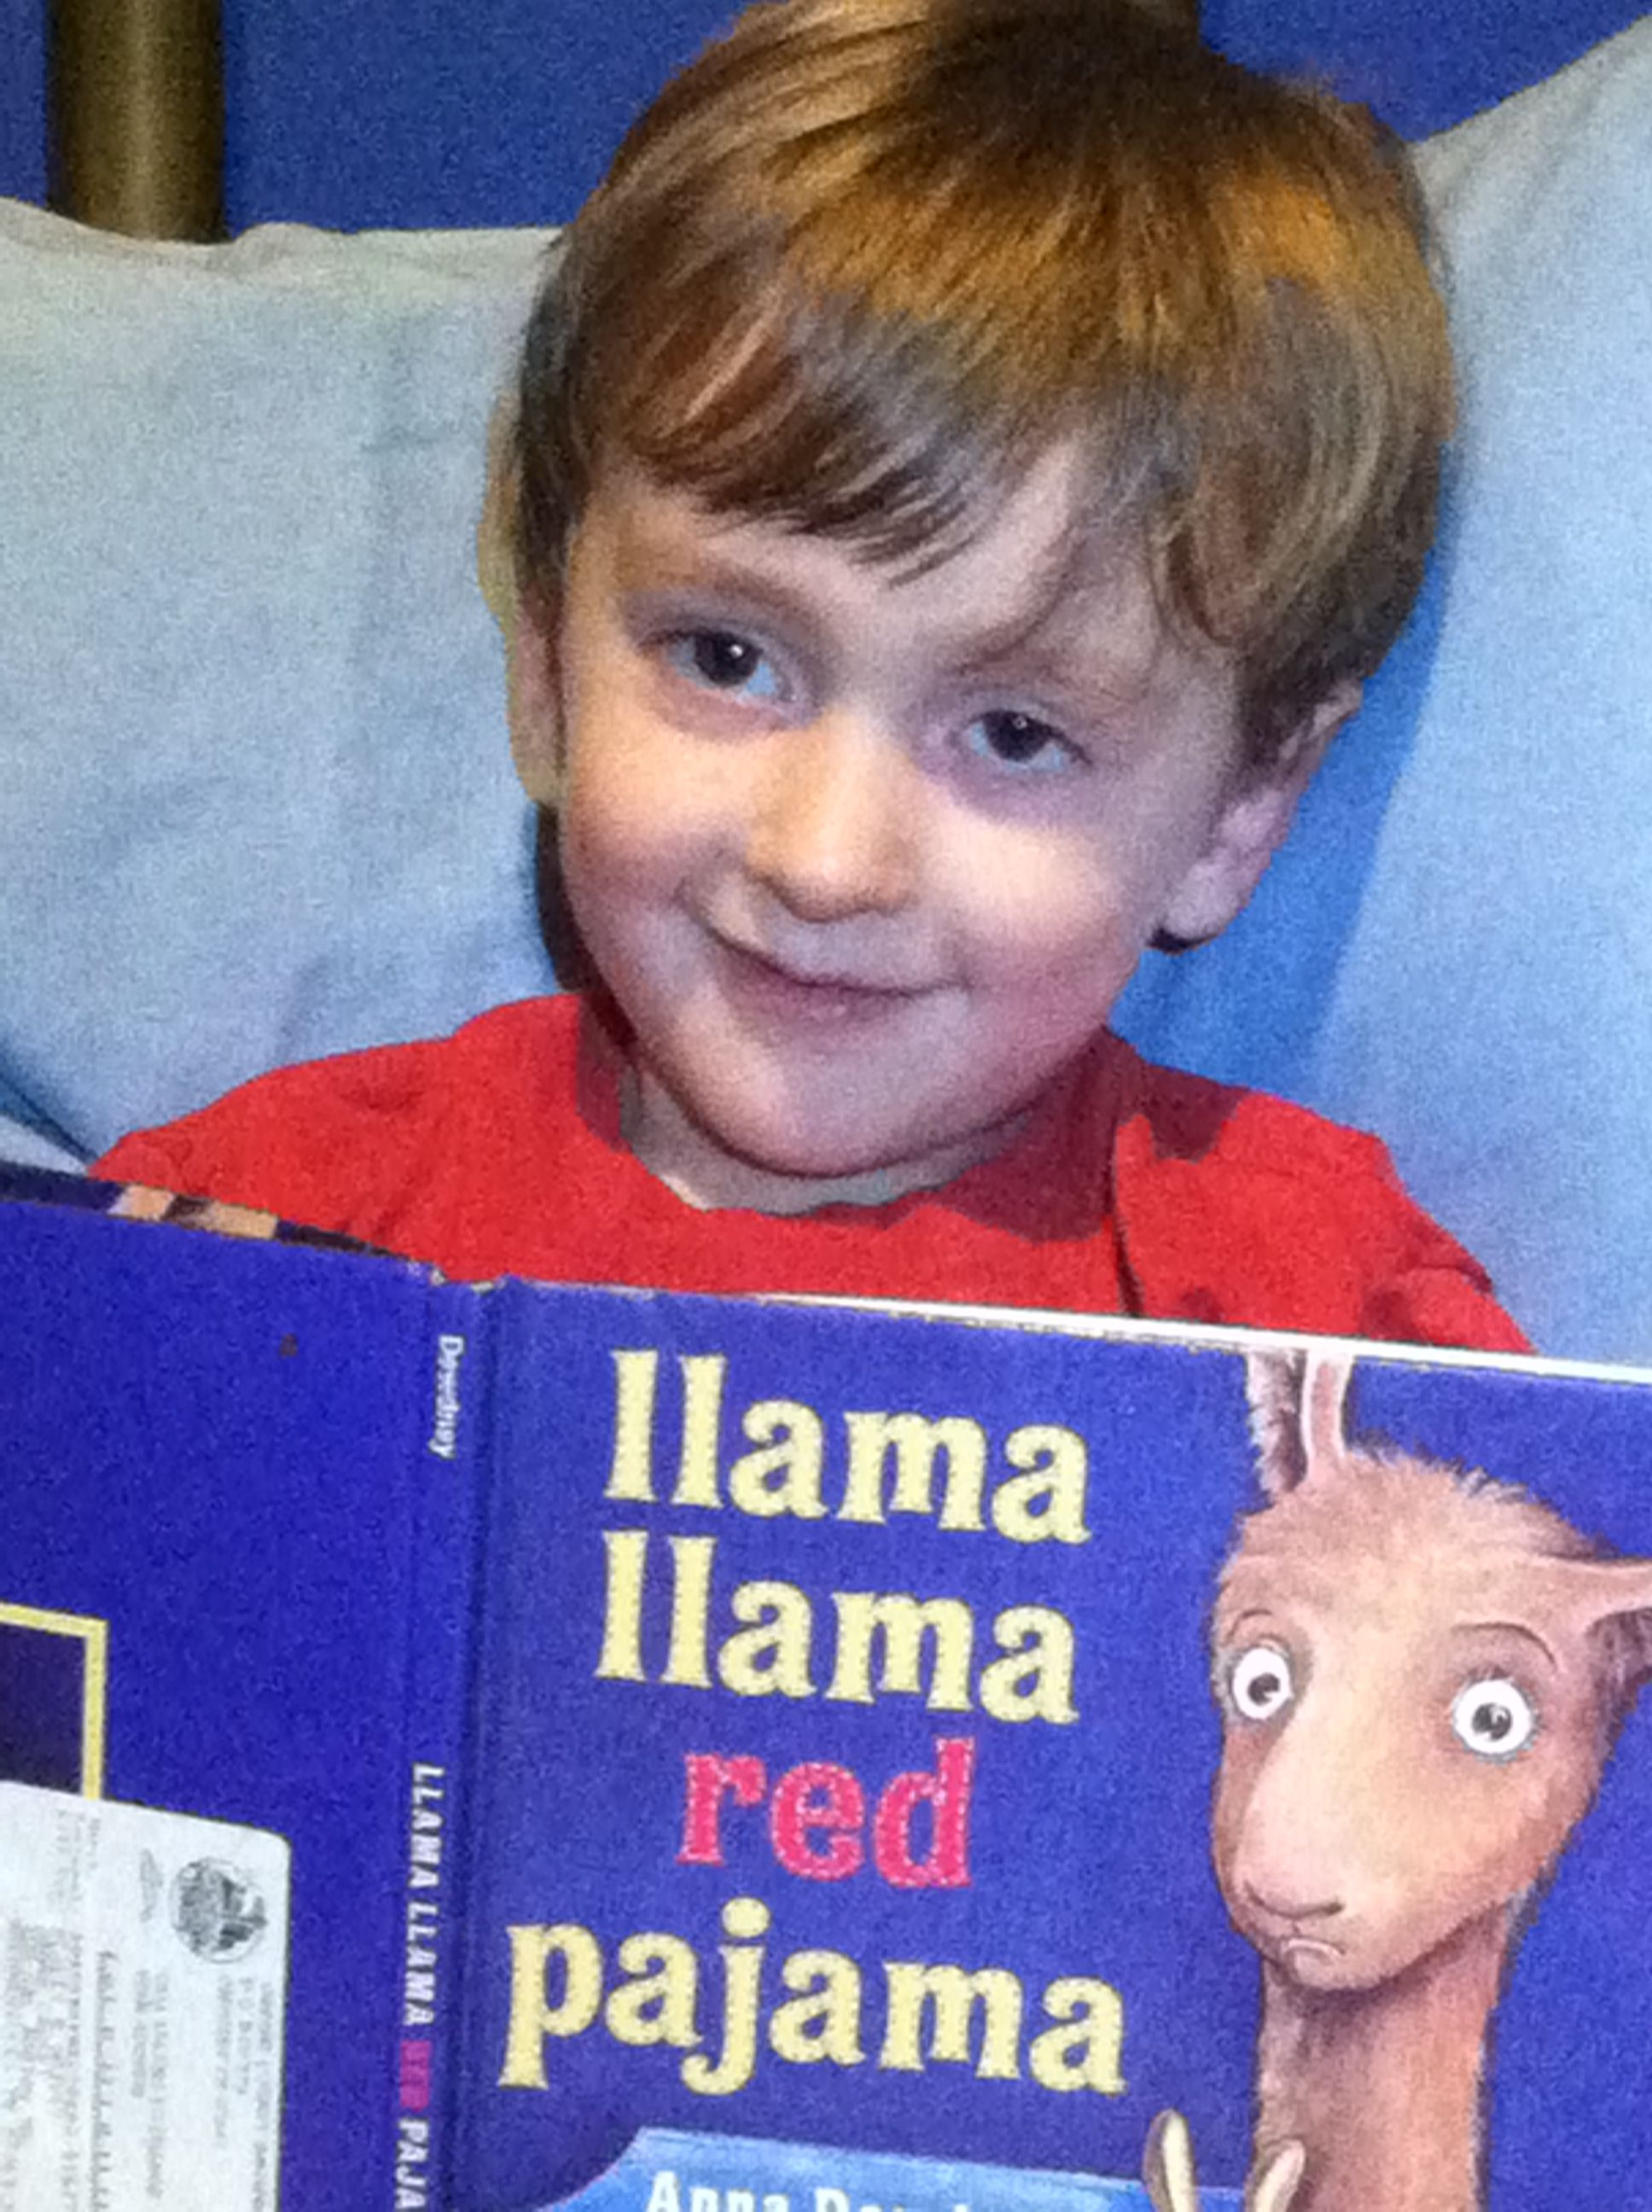 Picture of my son with Llama Llama book.  Used for texting my invite and as part of the cake.   Invitation:  Llama llama red pajama Invites you to a birthday drama The party's for Warren,  he's turning 4 Come celebrate, meet real llamas and more!  October 5 is the date It's happening soon and we can't wait! Come to Walnut Ridge Llama Farm It's in Chuckey and full of charm.  Llama  hums a birthday tune  The fun takes place from 10 til noon Llama llama games in store  Along with lunch, cake…